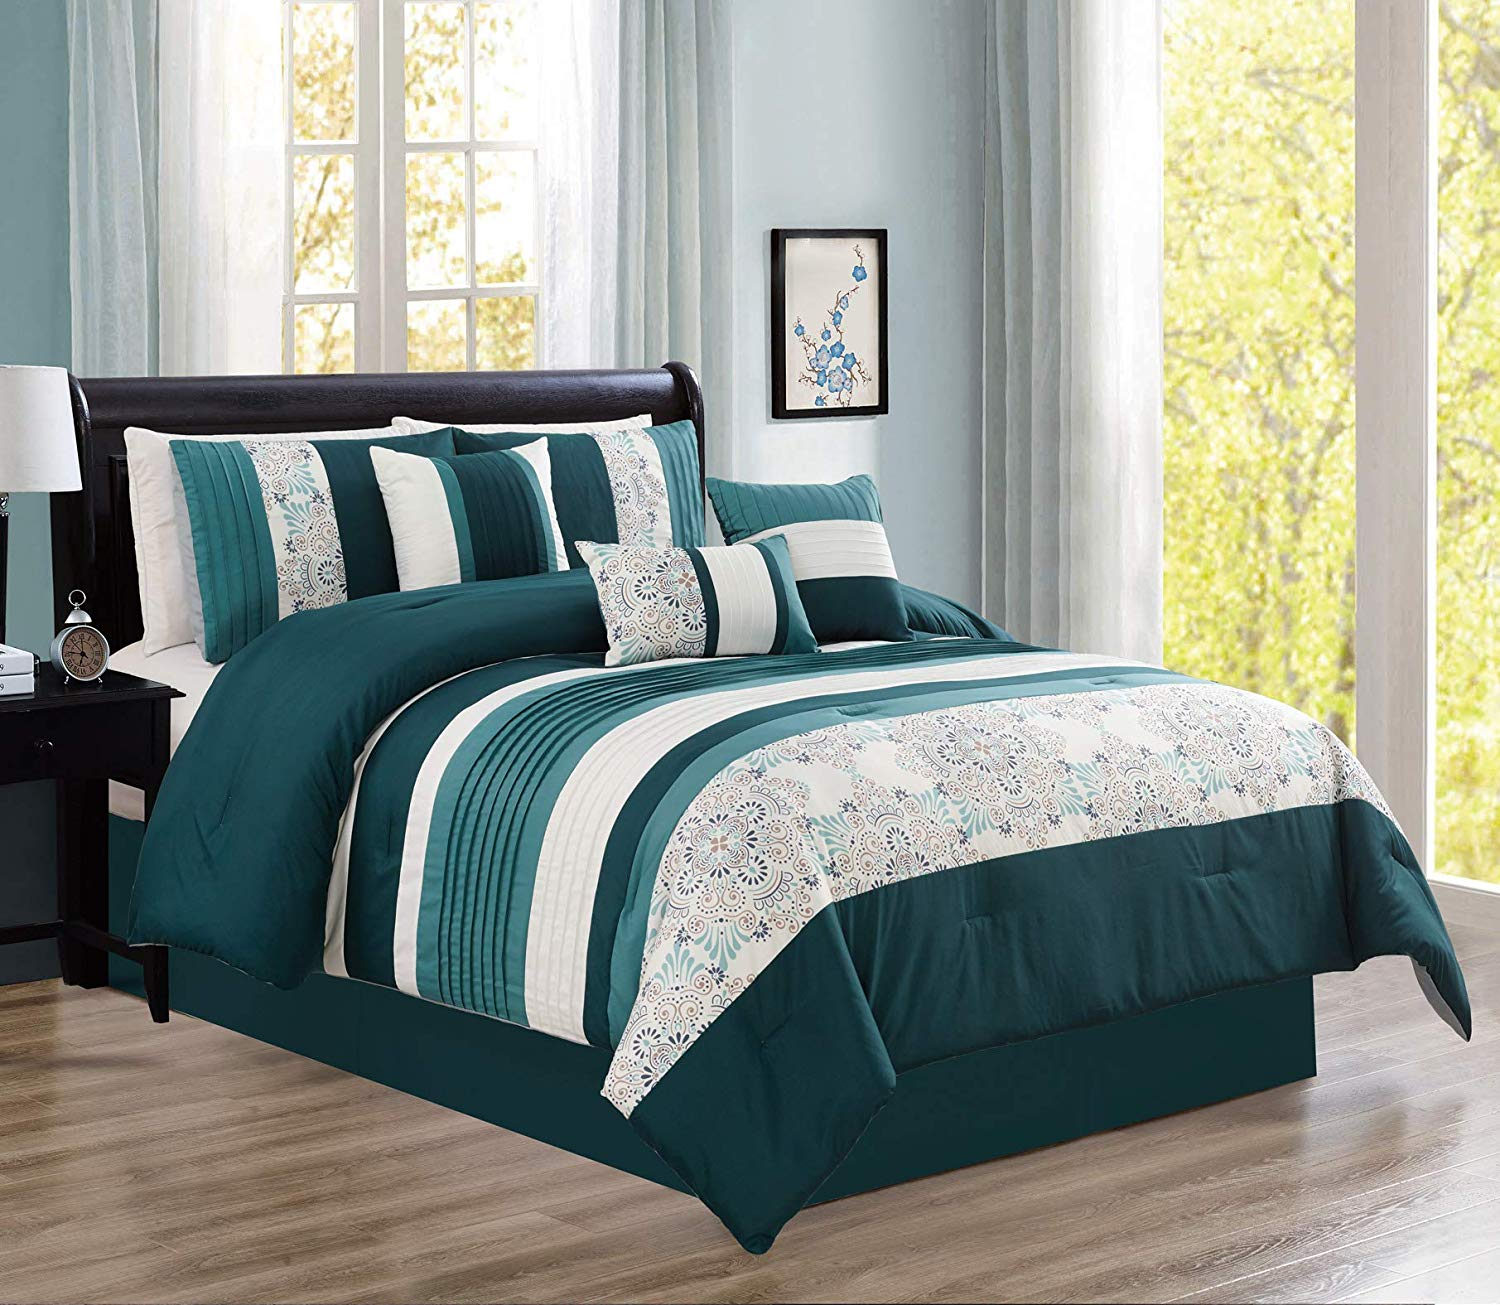 Hgmart Bedding Comforter Set Bed In A Bag 7 Piece Modern Microfiber Bedding Sets Oversized Bedroom Comforters With Accent Pillows Cal King Size Teal Walmart Com Walmart Com